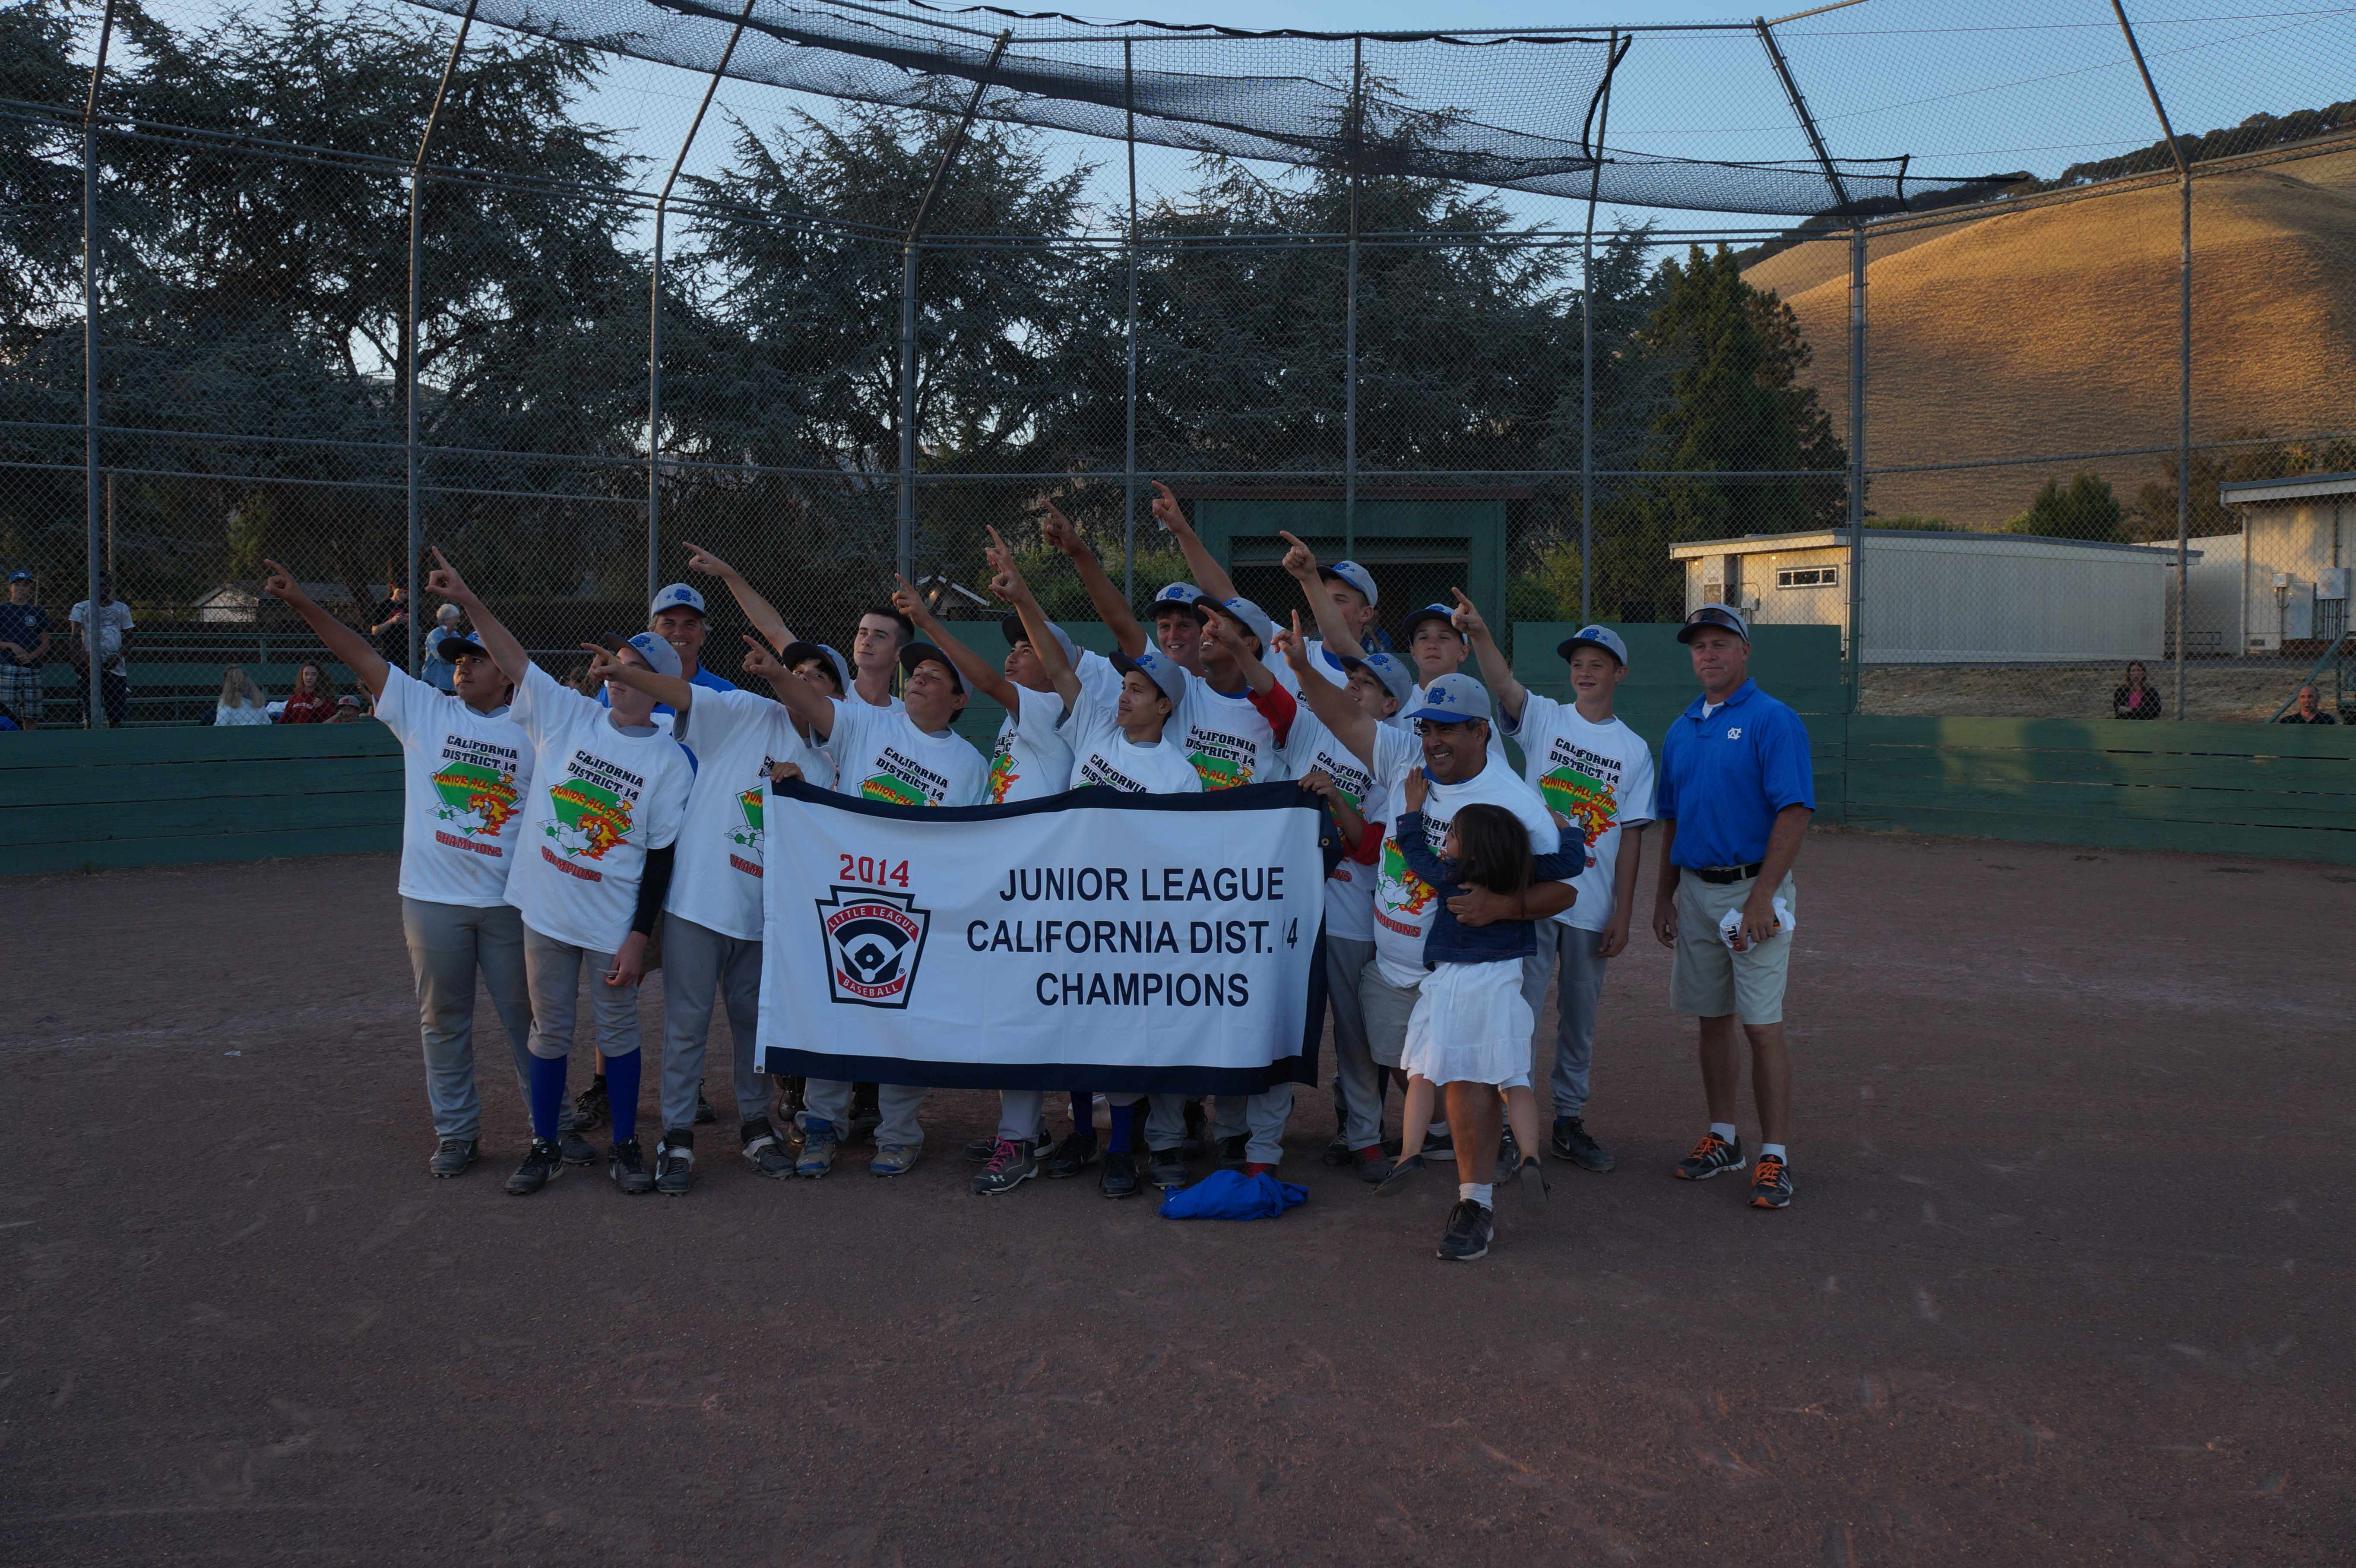 2014 JuniorAll Star Champs 004.jpg